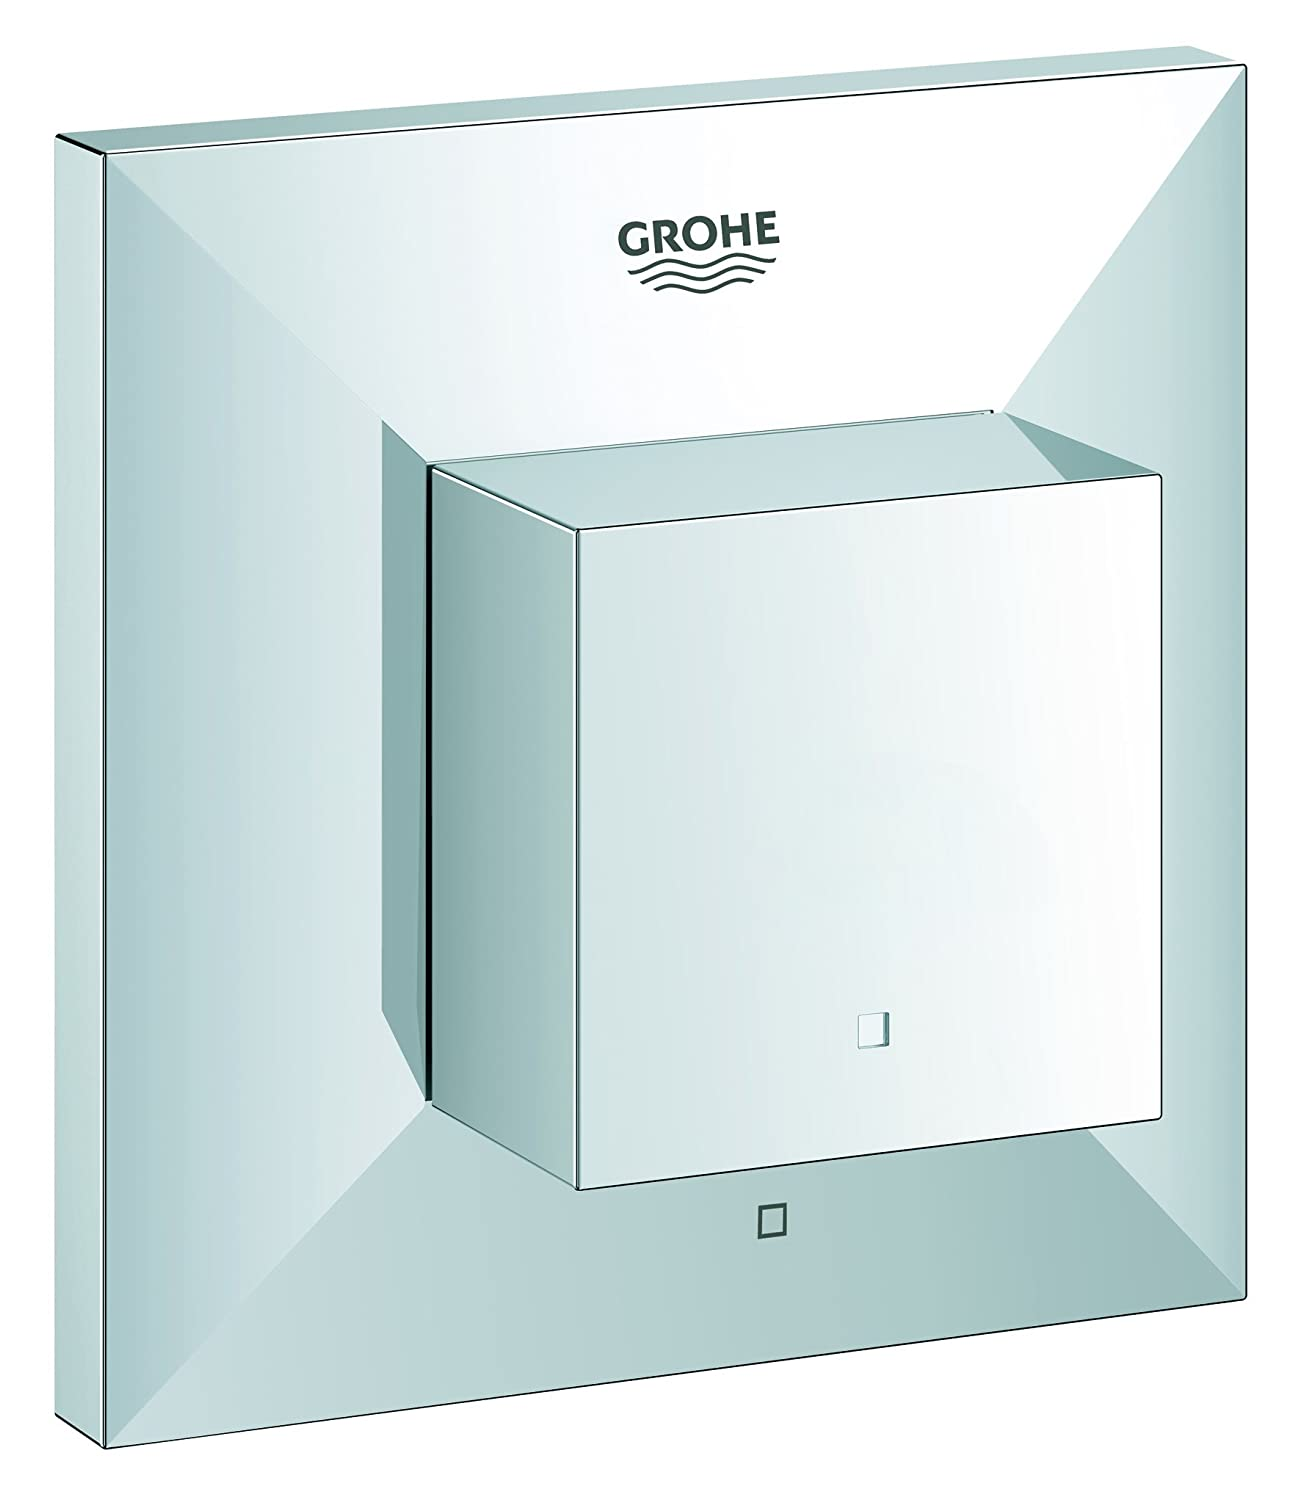 GROHE Allure Brilliant UP-Ventil Oberbau 19796000